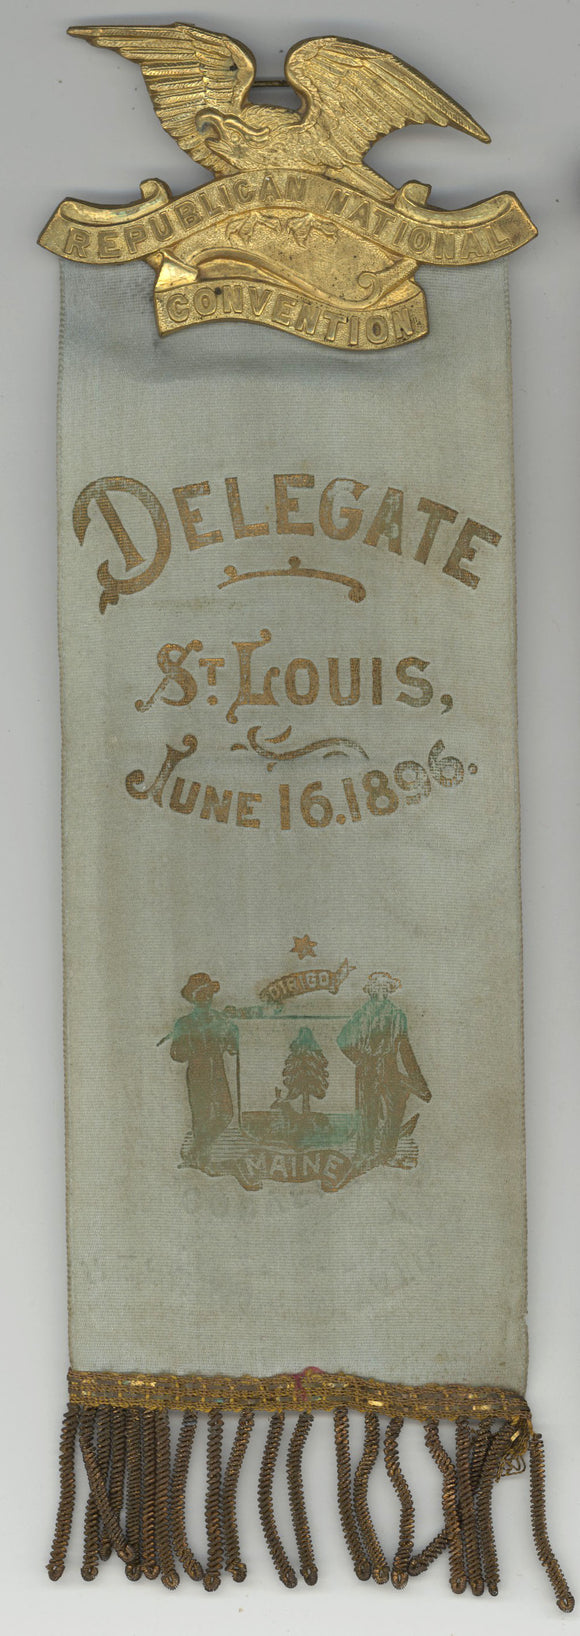 REPUBLICAN NATIONAL CONVENTION / DELEGATE ST. LOUIS ... 1896 ... MAINE